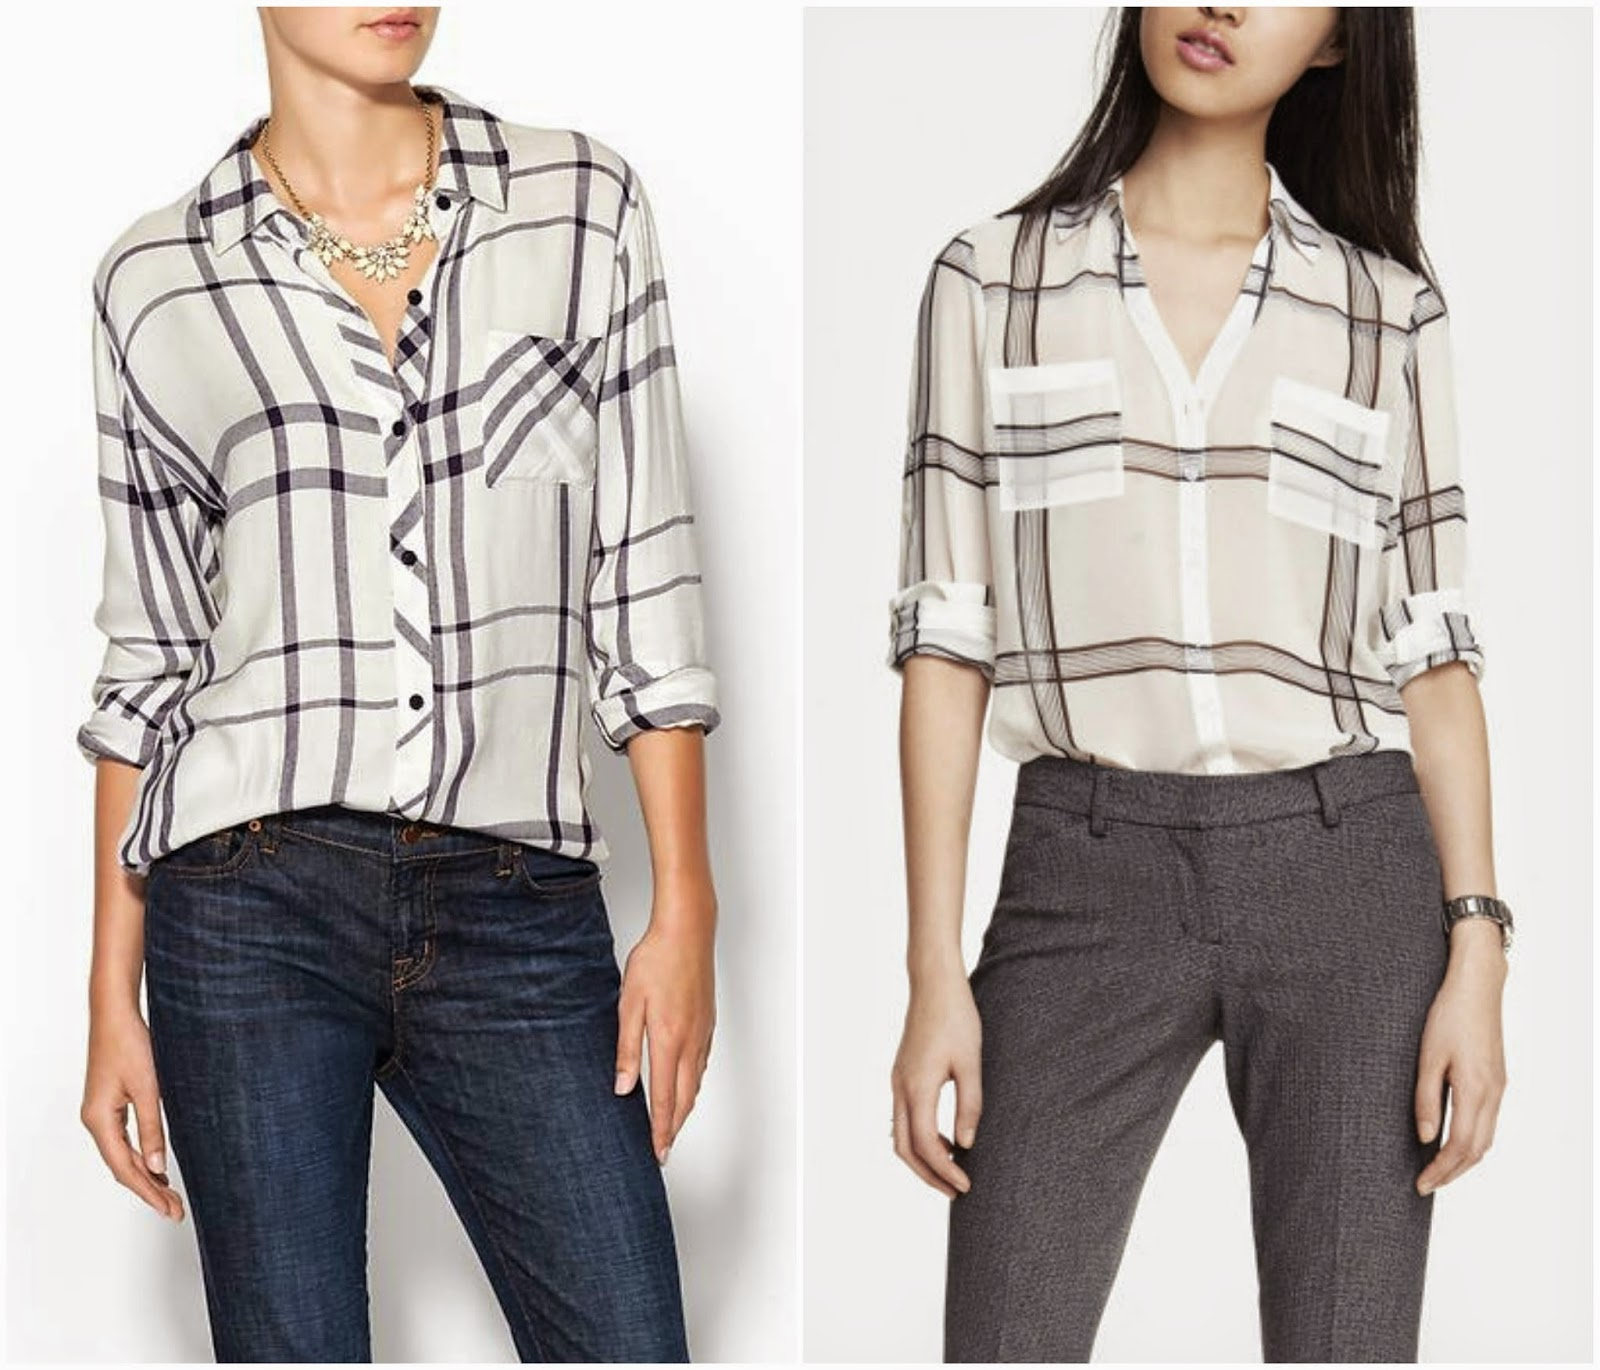 Express Oversized Plaid Portofino vs. Rails Plaid